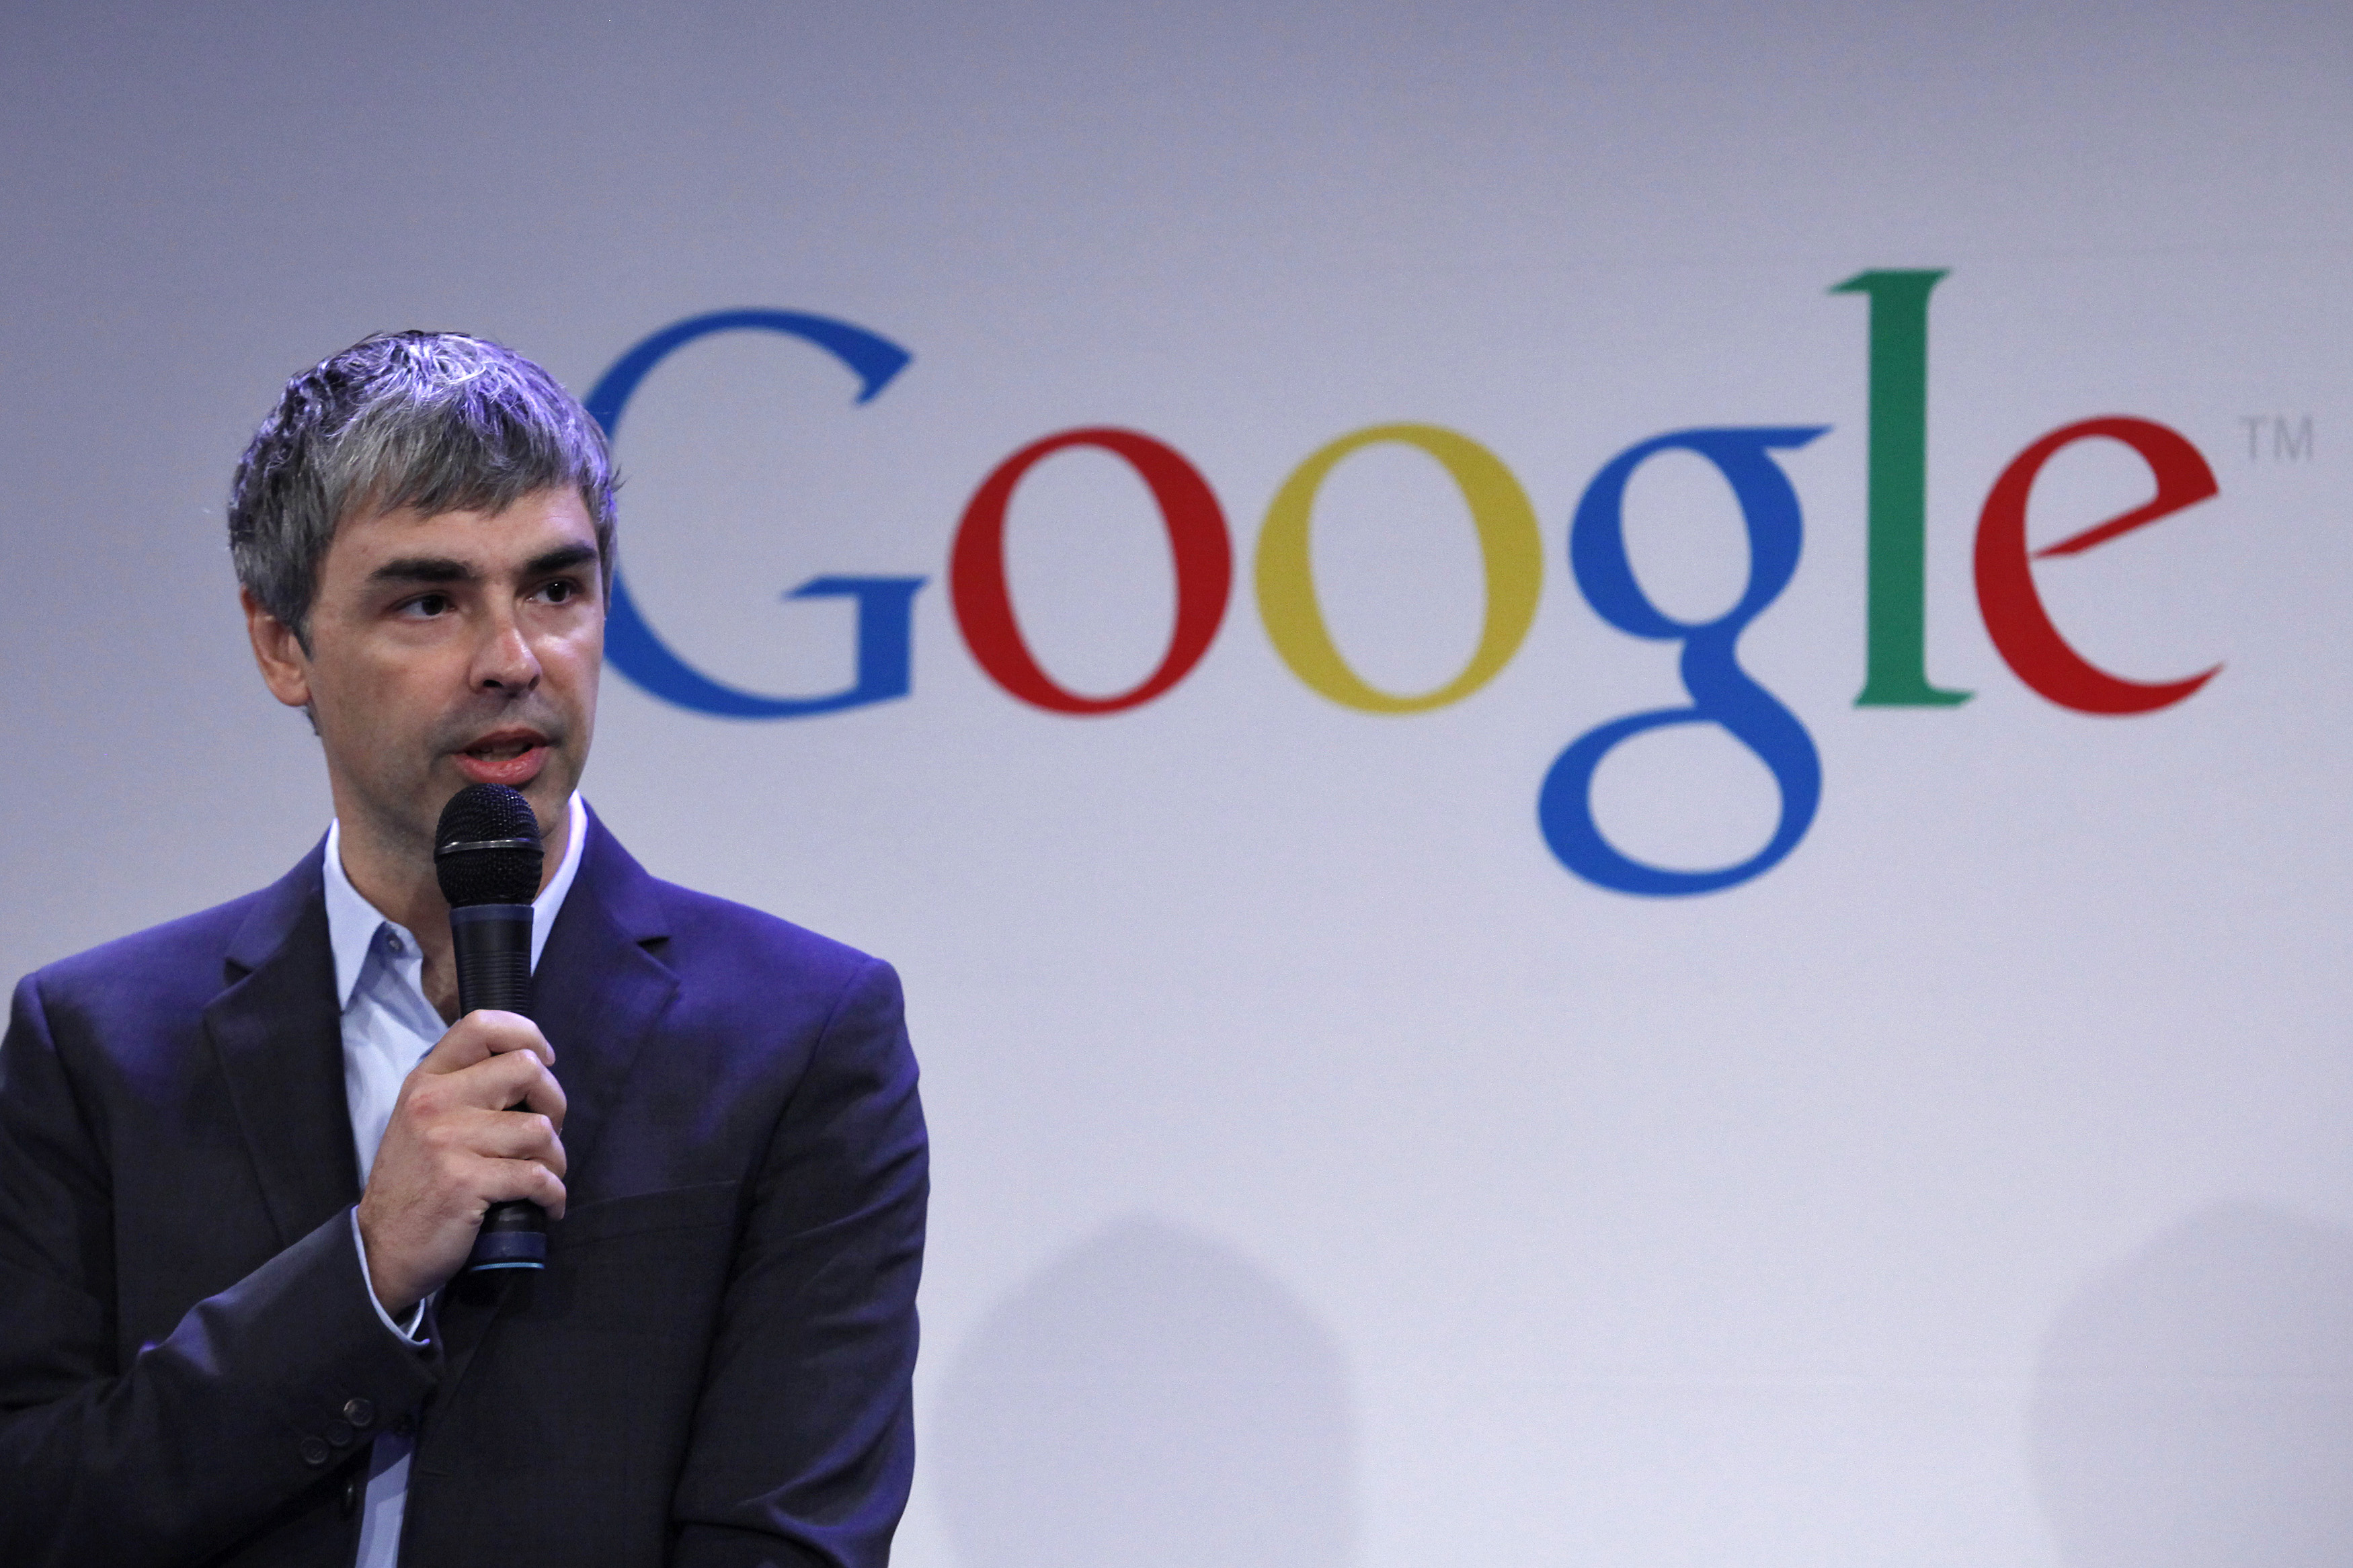 Google CEO Larry Page speaks during a press announcement at Google's headquarters in New York, May 21, 2012. Google will allocate some 22,000 square feet of its New York headquarters to CornellNYC Tech, while the university completes its campus on Roosevelt Island. The space will allow Cornell to build its presence in New York in close proximity to the tech companies and entrepreneurs with whom it will collaborate, according to media reports. REUTERS/Eduardo Munoz (UNITED STATES - Tags: SCIENCE TECHNOLOGY BUSINESS EDUCATION) - RTR32F46